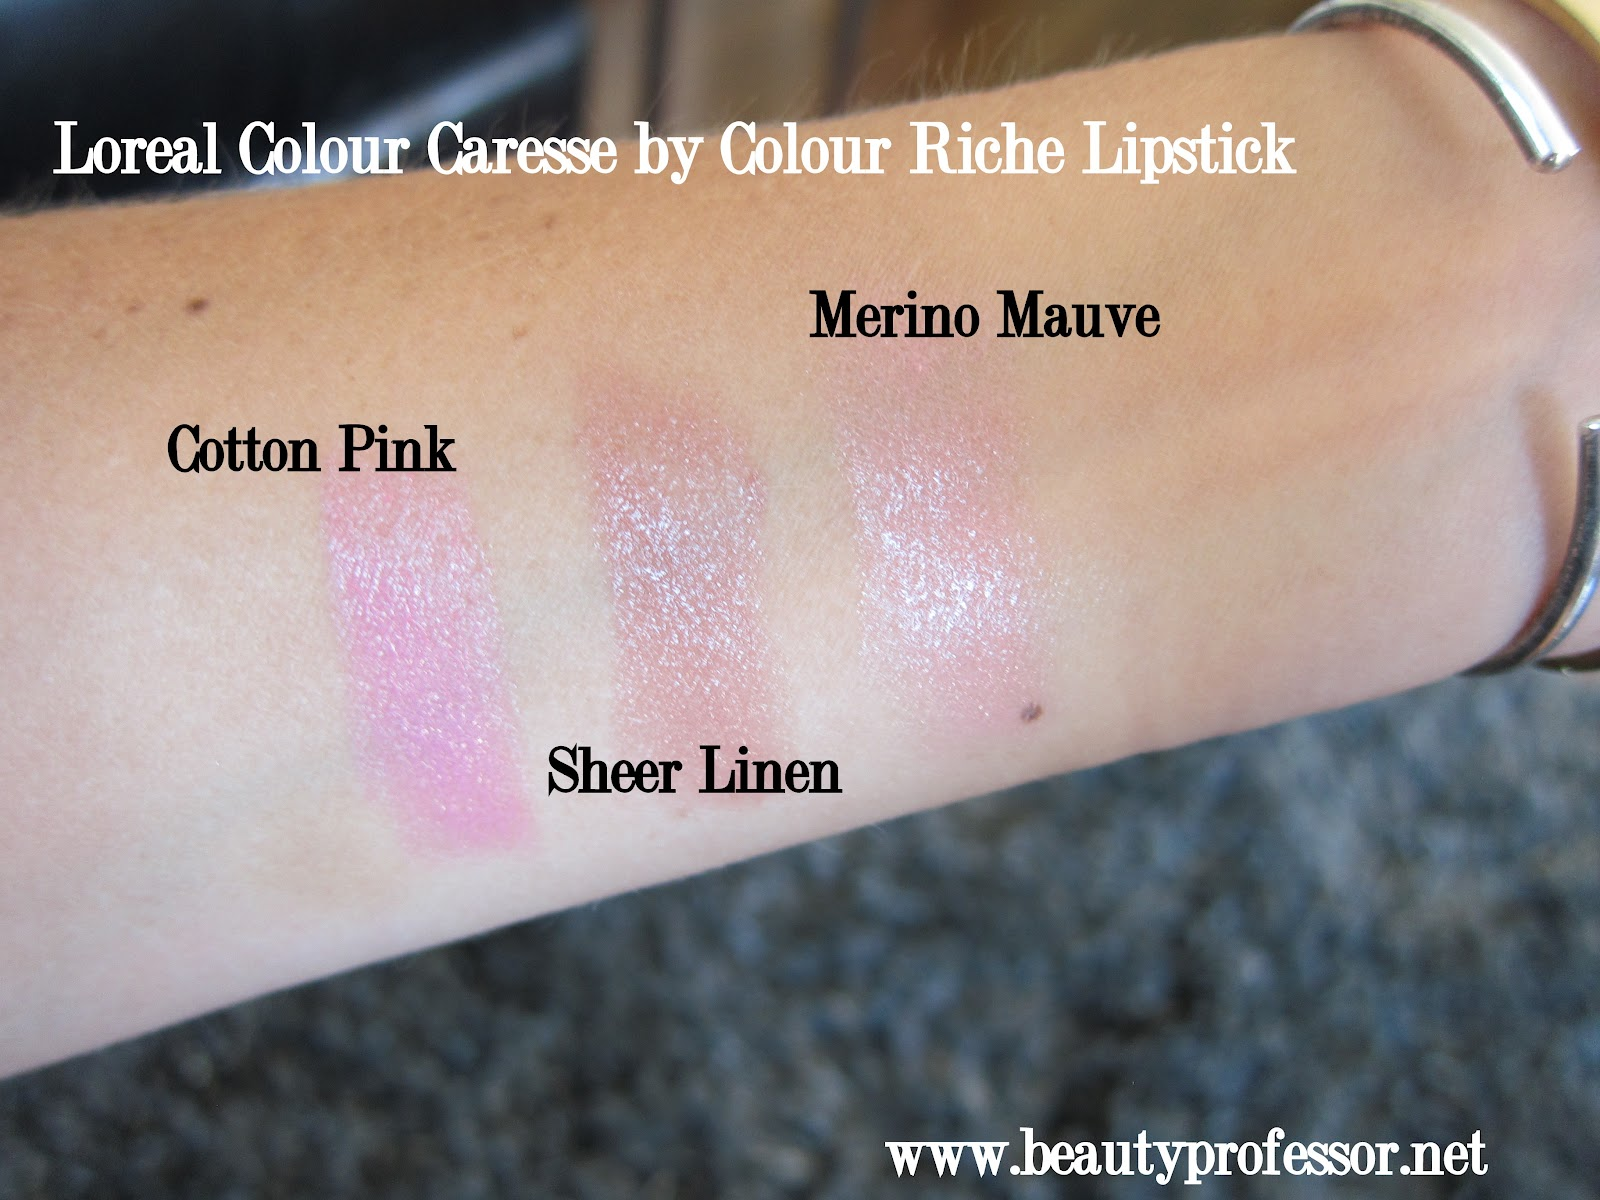 Loreal color caresse by color rich lipstick - These Lipsticks Are Sheer But Quite Pigmented